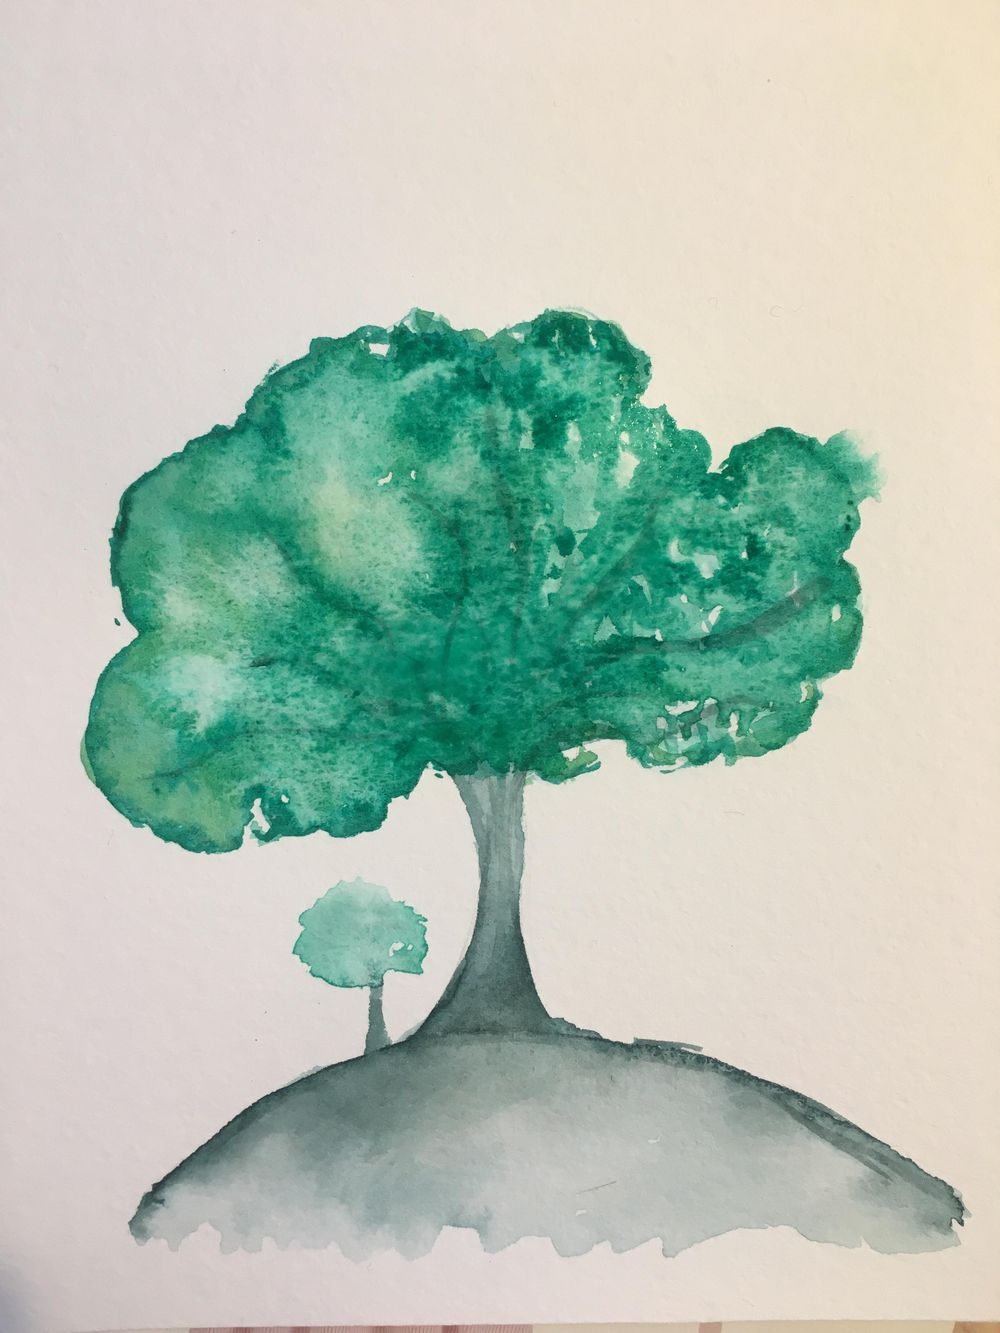 Watercolour rookie - image 3 - student project